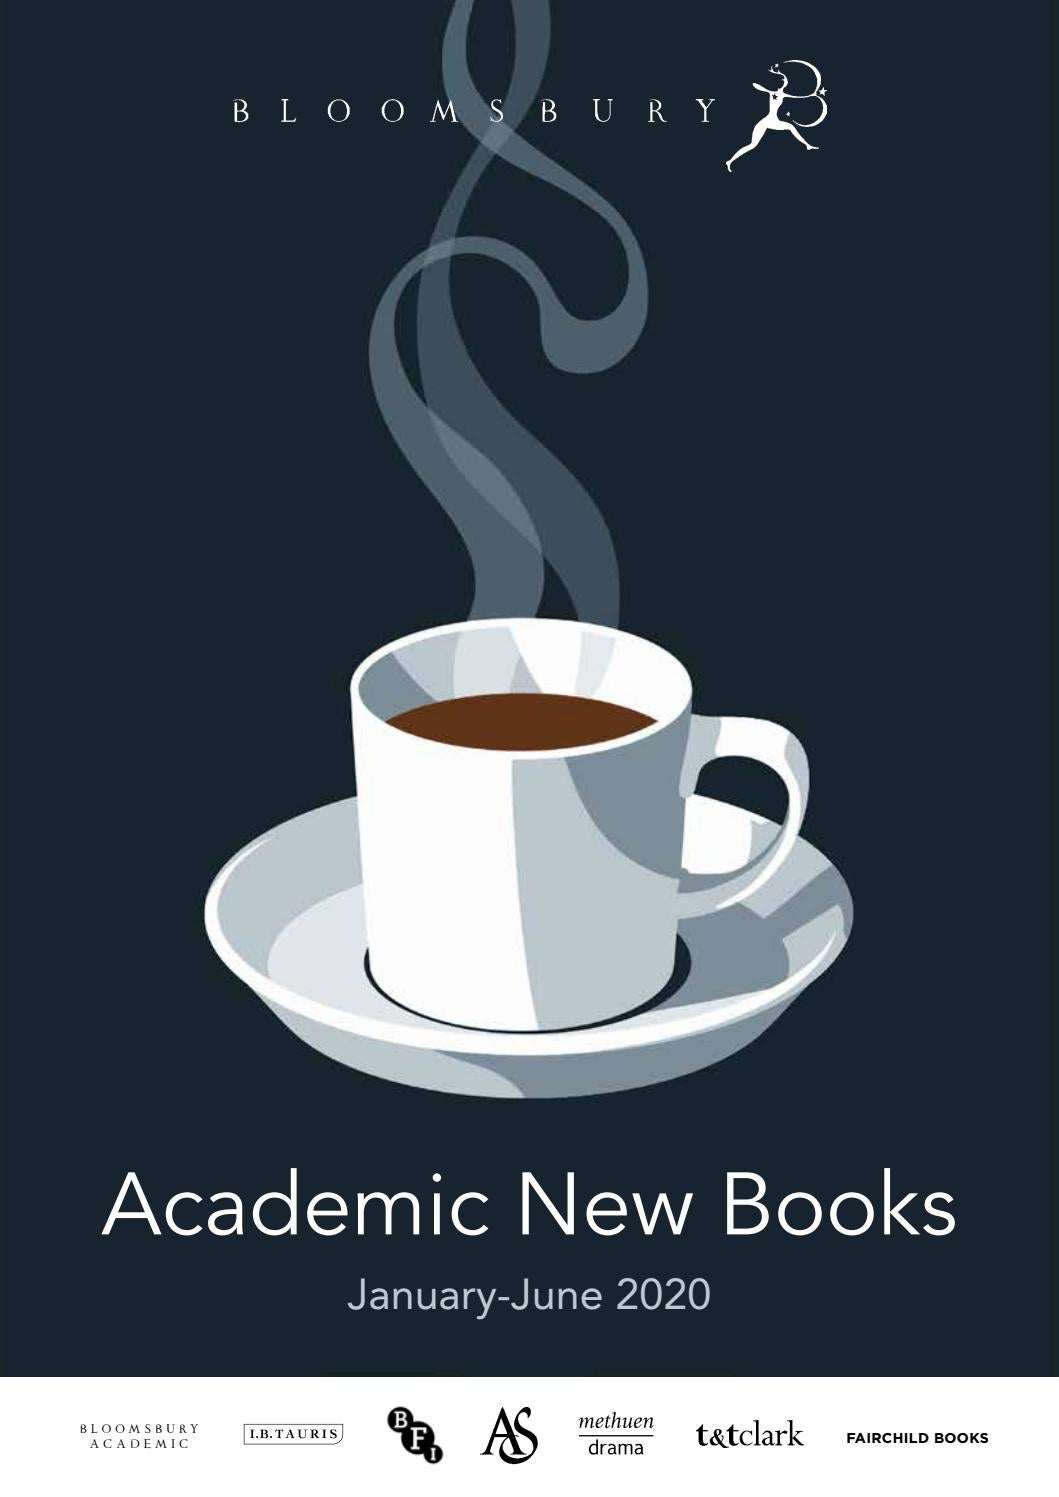 Bloomsbury Academic New Books Jan June 2020 By Bloomsbury